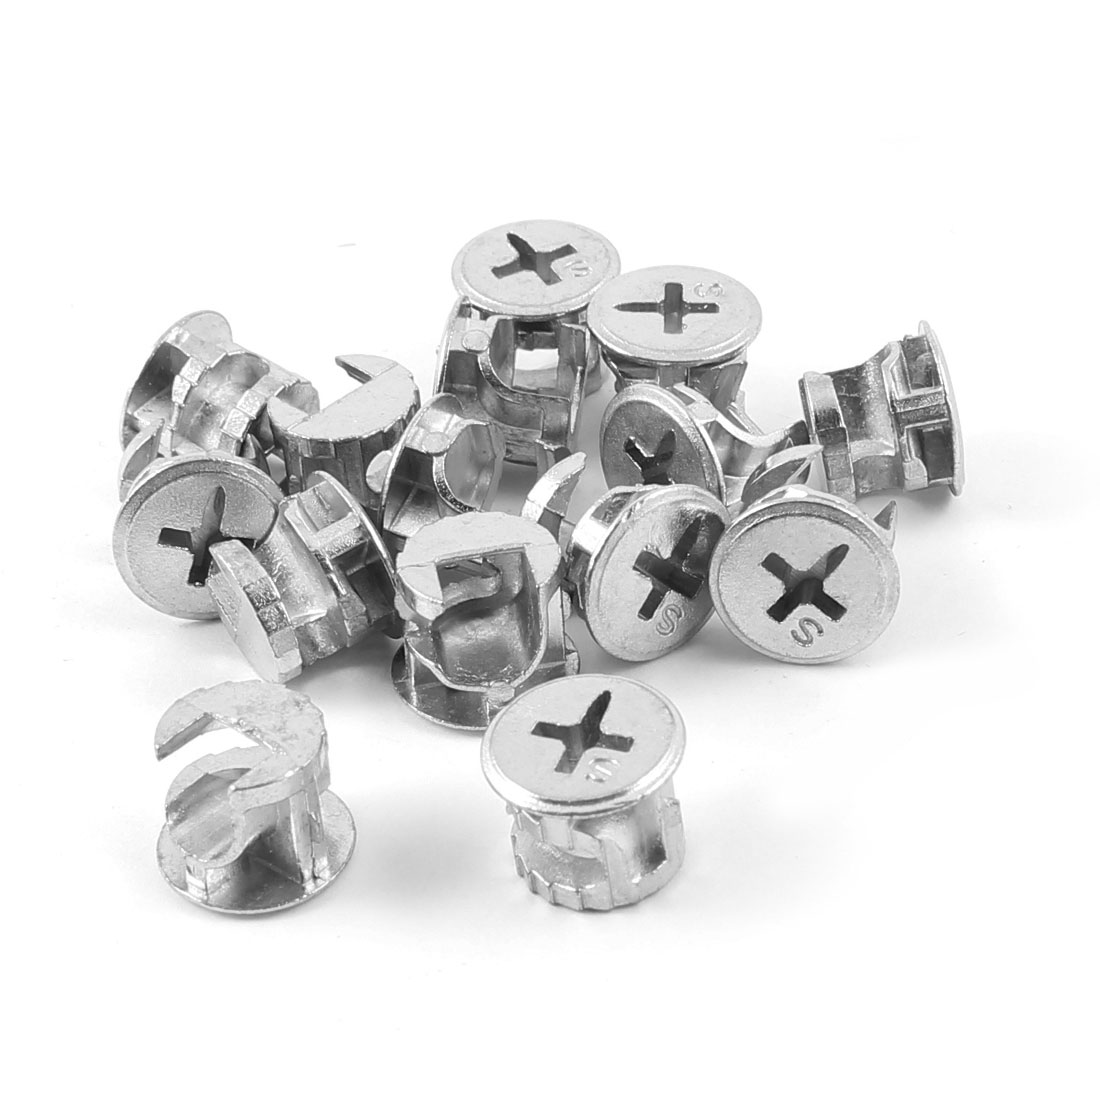 15 Pcs Silver Tone 13mm Dia Head Furniture Connecter Cam Fittings